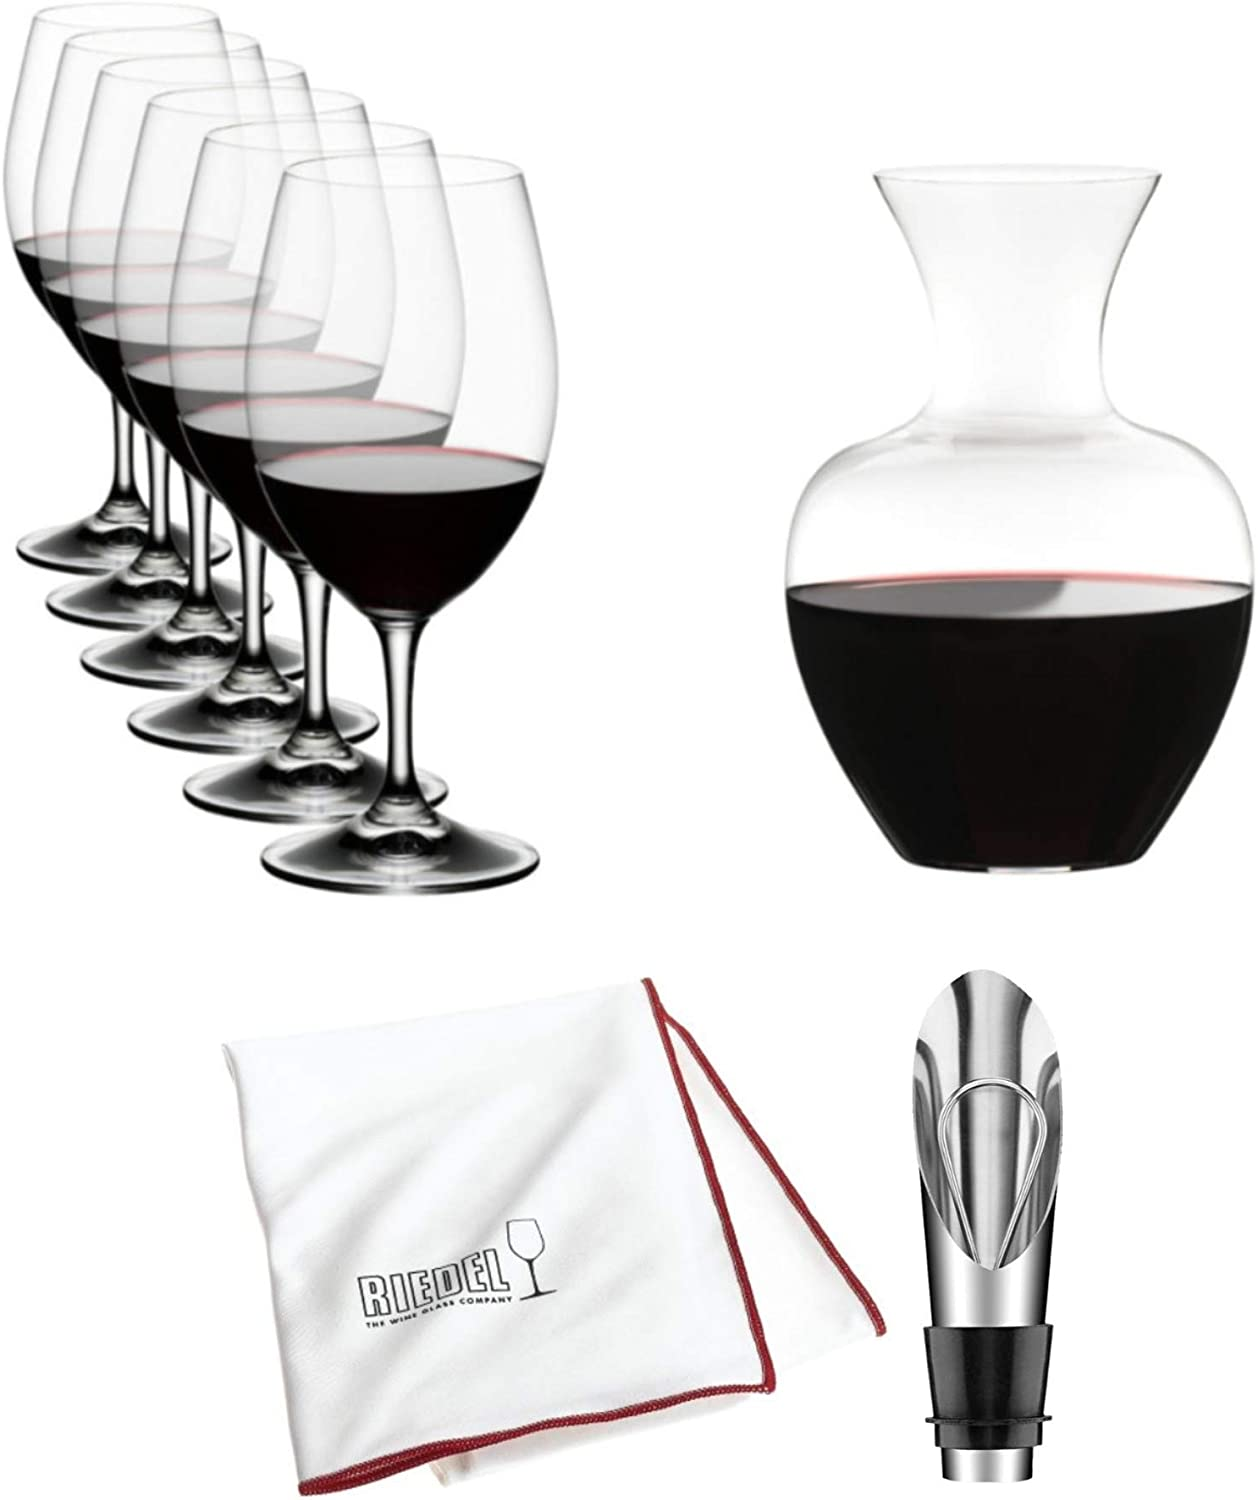 Riedel Ouverture Magnum 6-Piece Glass Set with Apple Decanter and Accessory Bundle (3 Items)